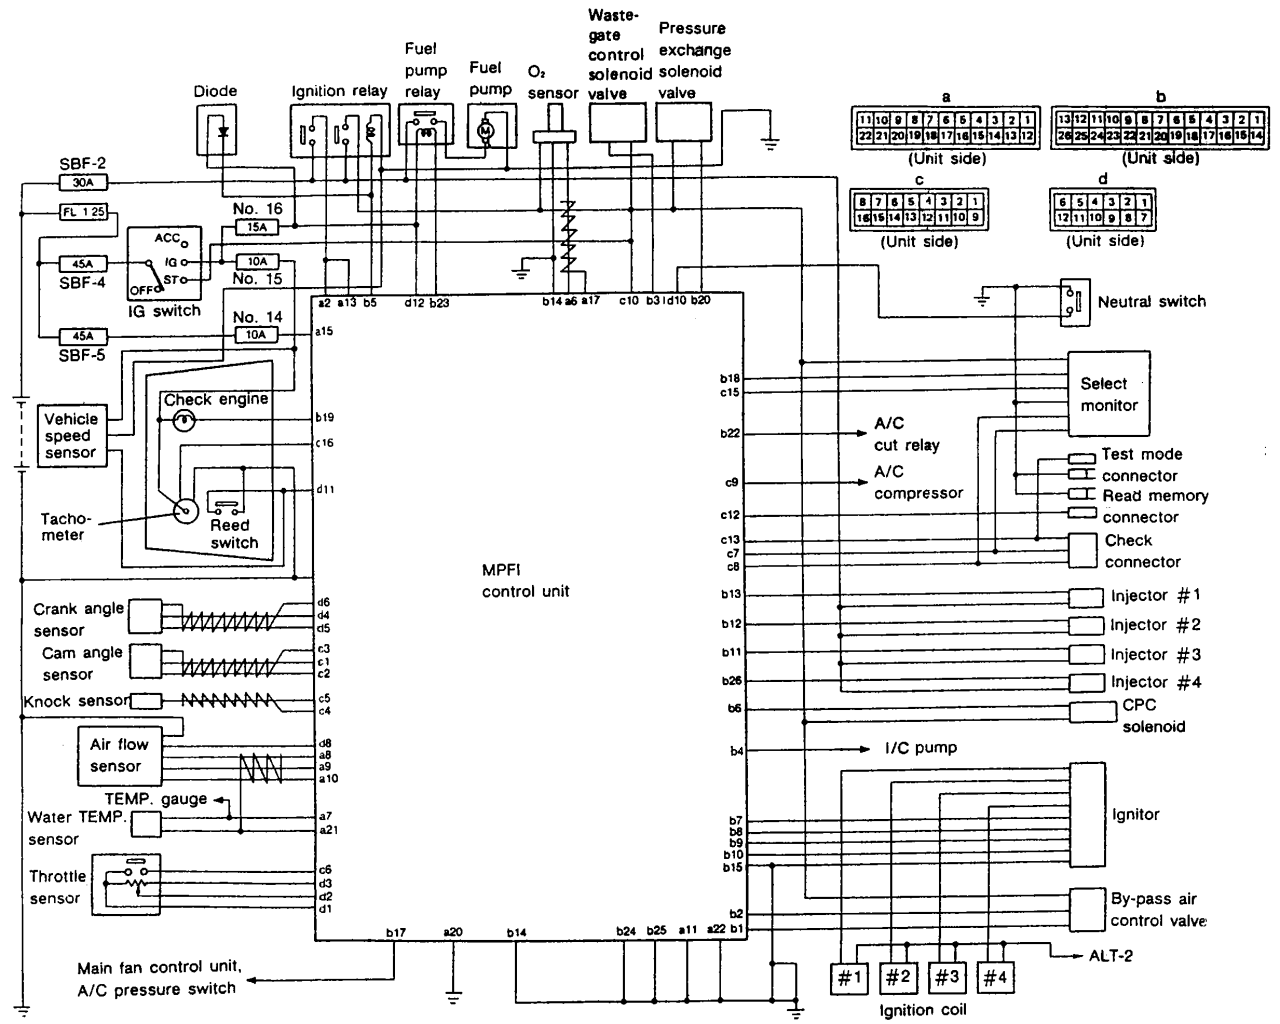 2000 subaru legacy wiring diagram pictures to pin on